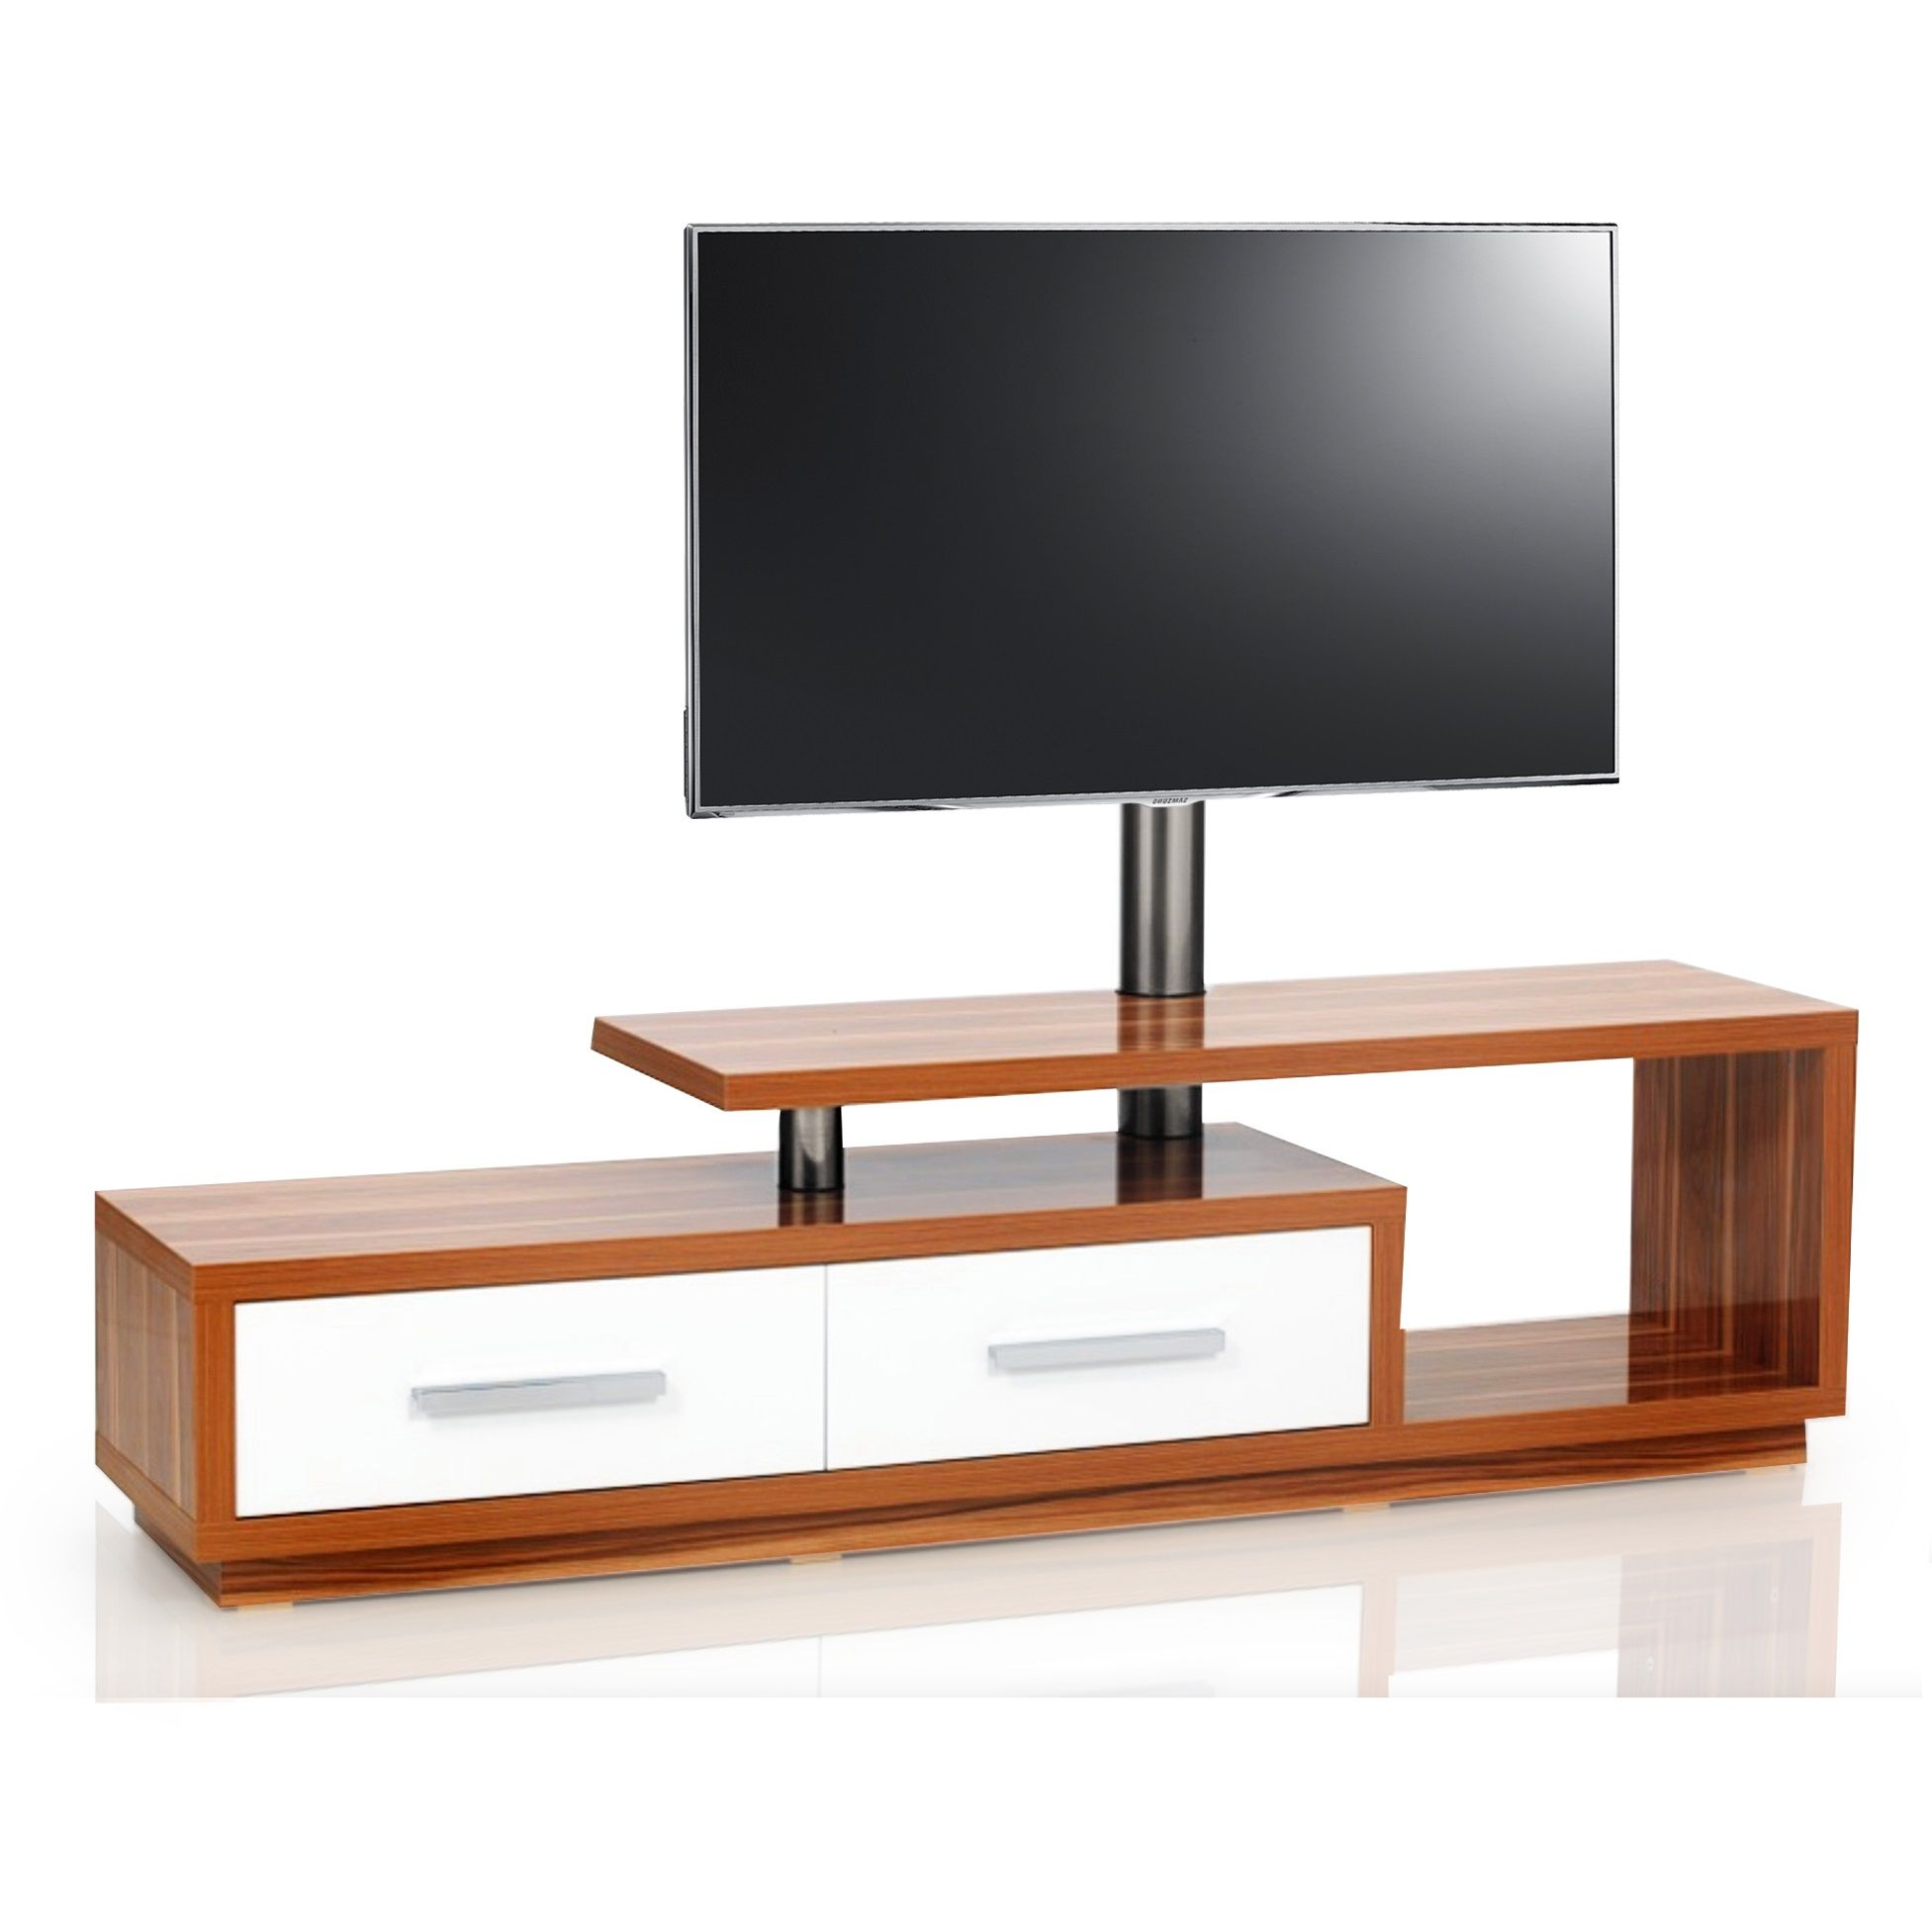 Table Tele Simple - Stunning Tables De Television Contemporary Joshkrajcik Us [mjhdah]http://www.maisonjoffrois.fr/wp-content/uploads/2017/08/meuble-tv-design-bois-massif-lagos-135-cm-1.jpg